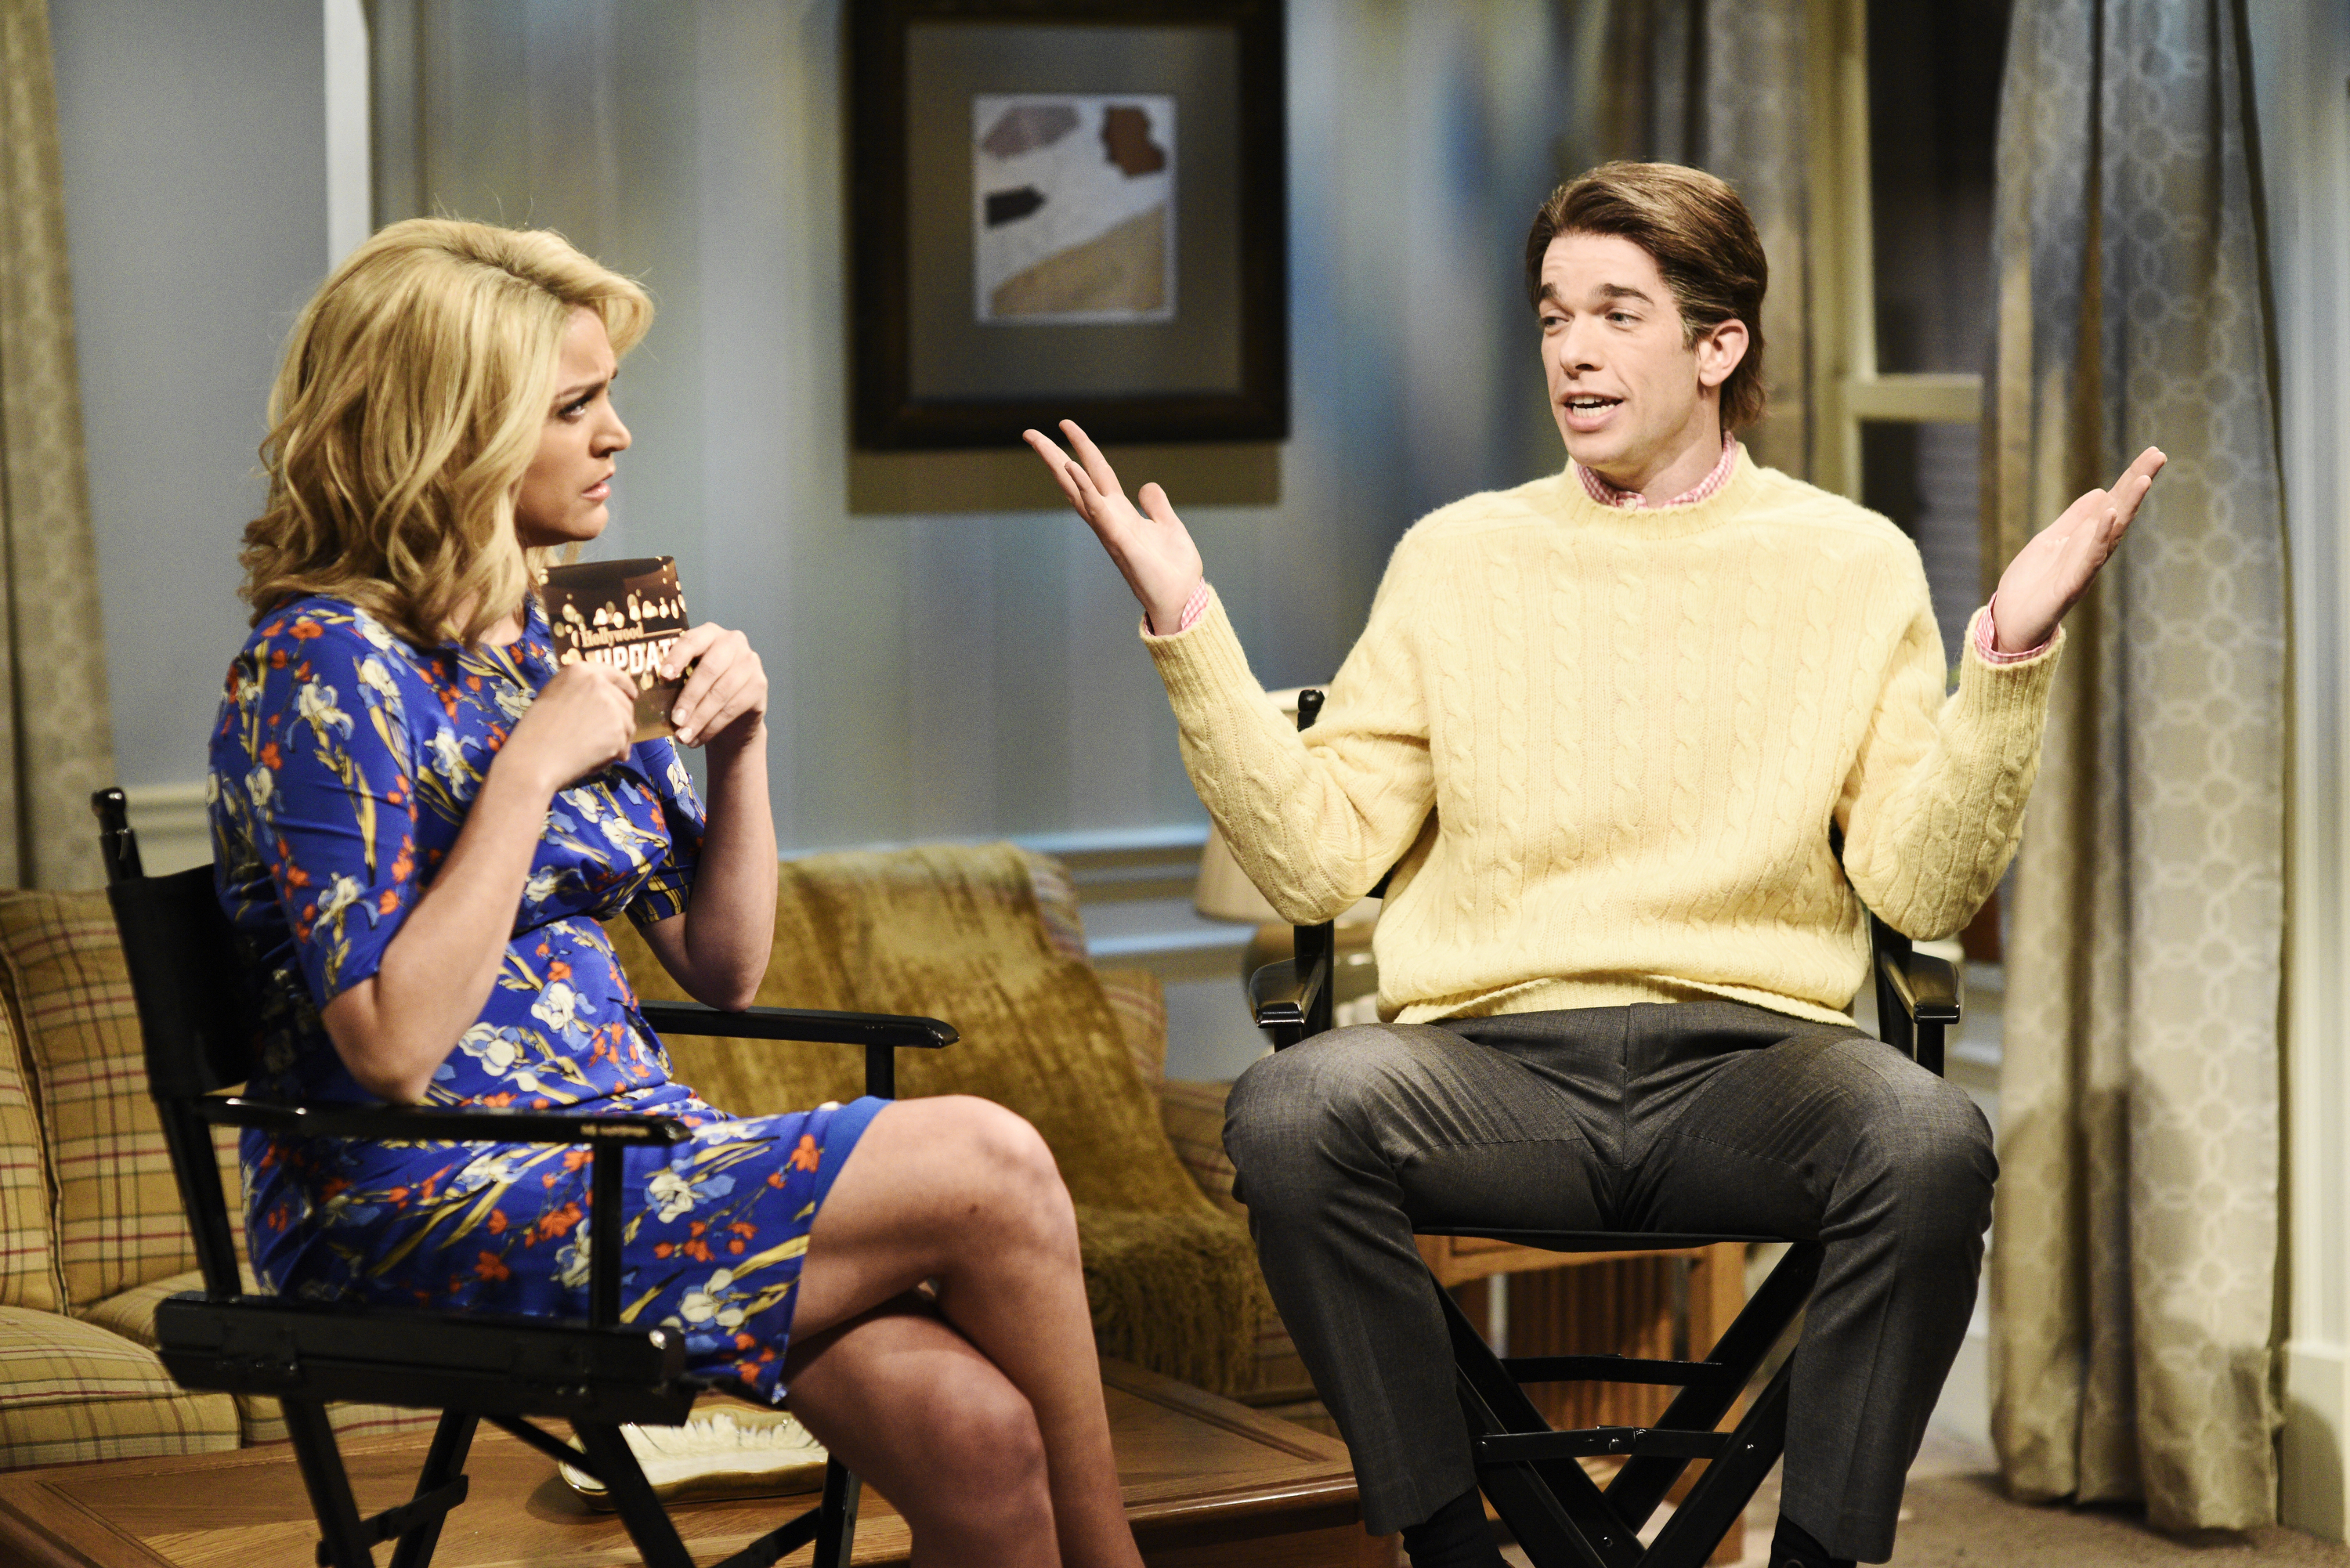 Snl Review Not So A List Host John Mulaney Makes For An A Grade Host Indiewire